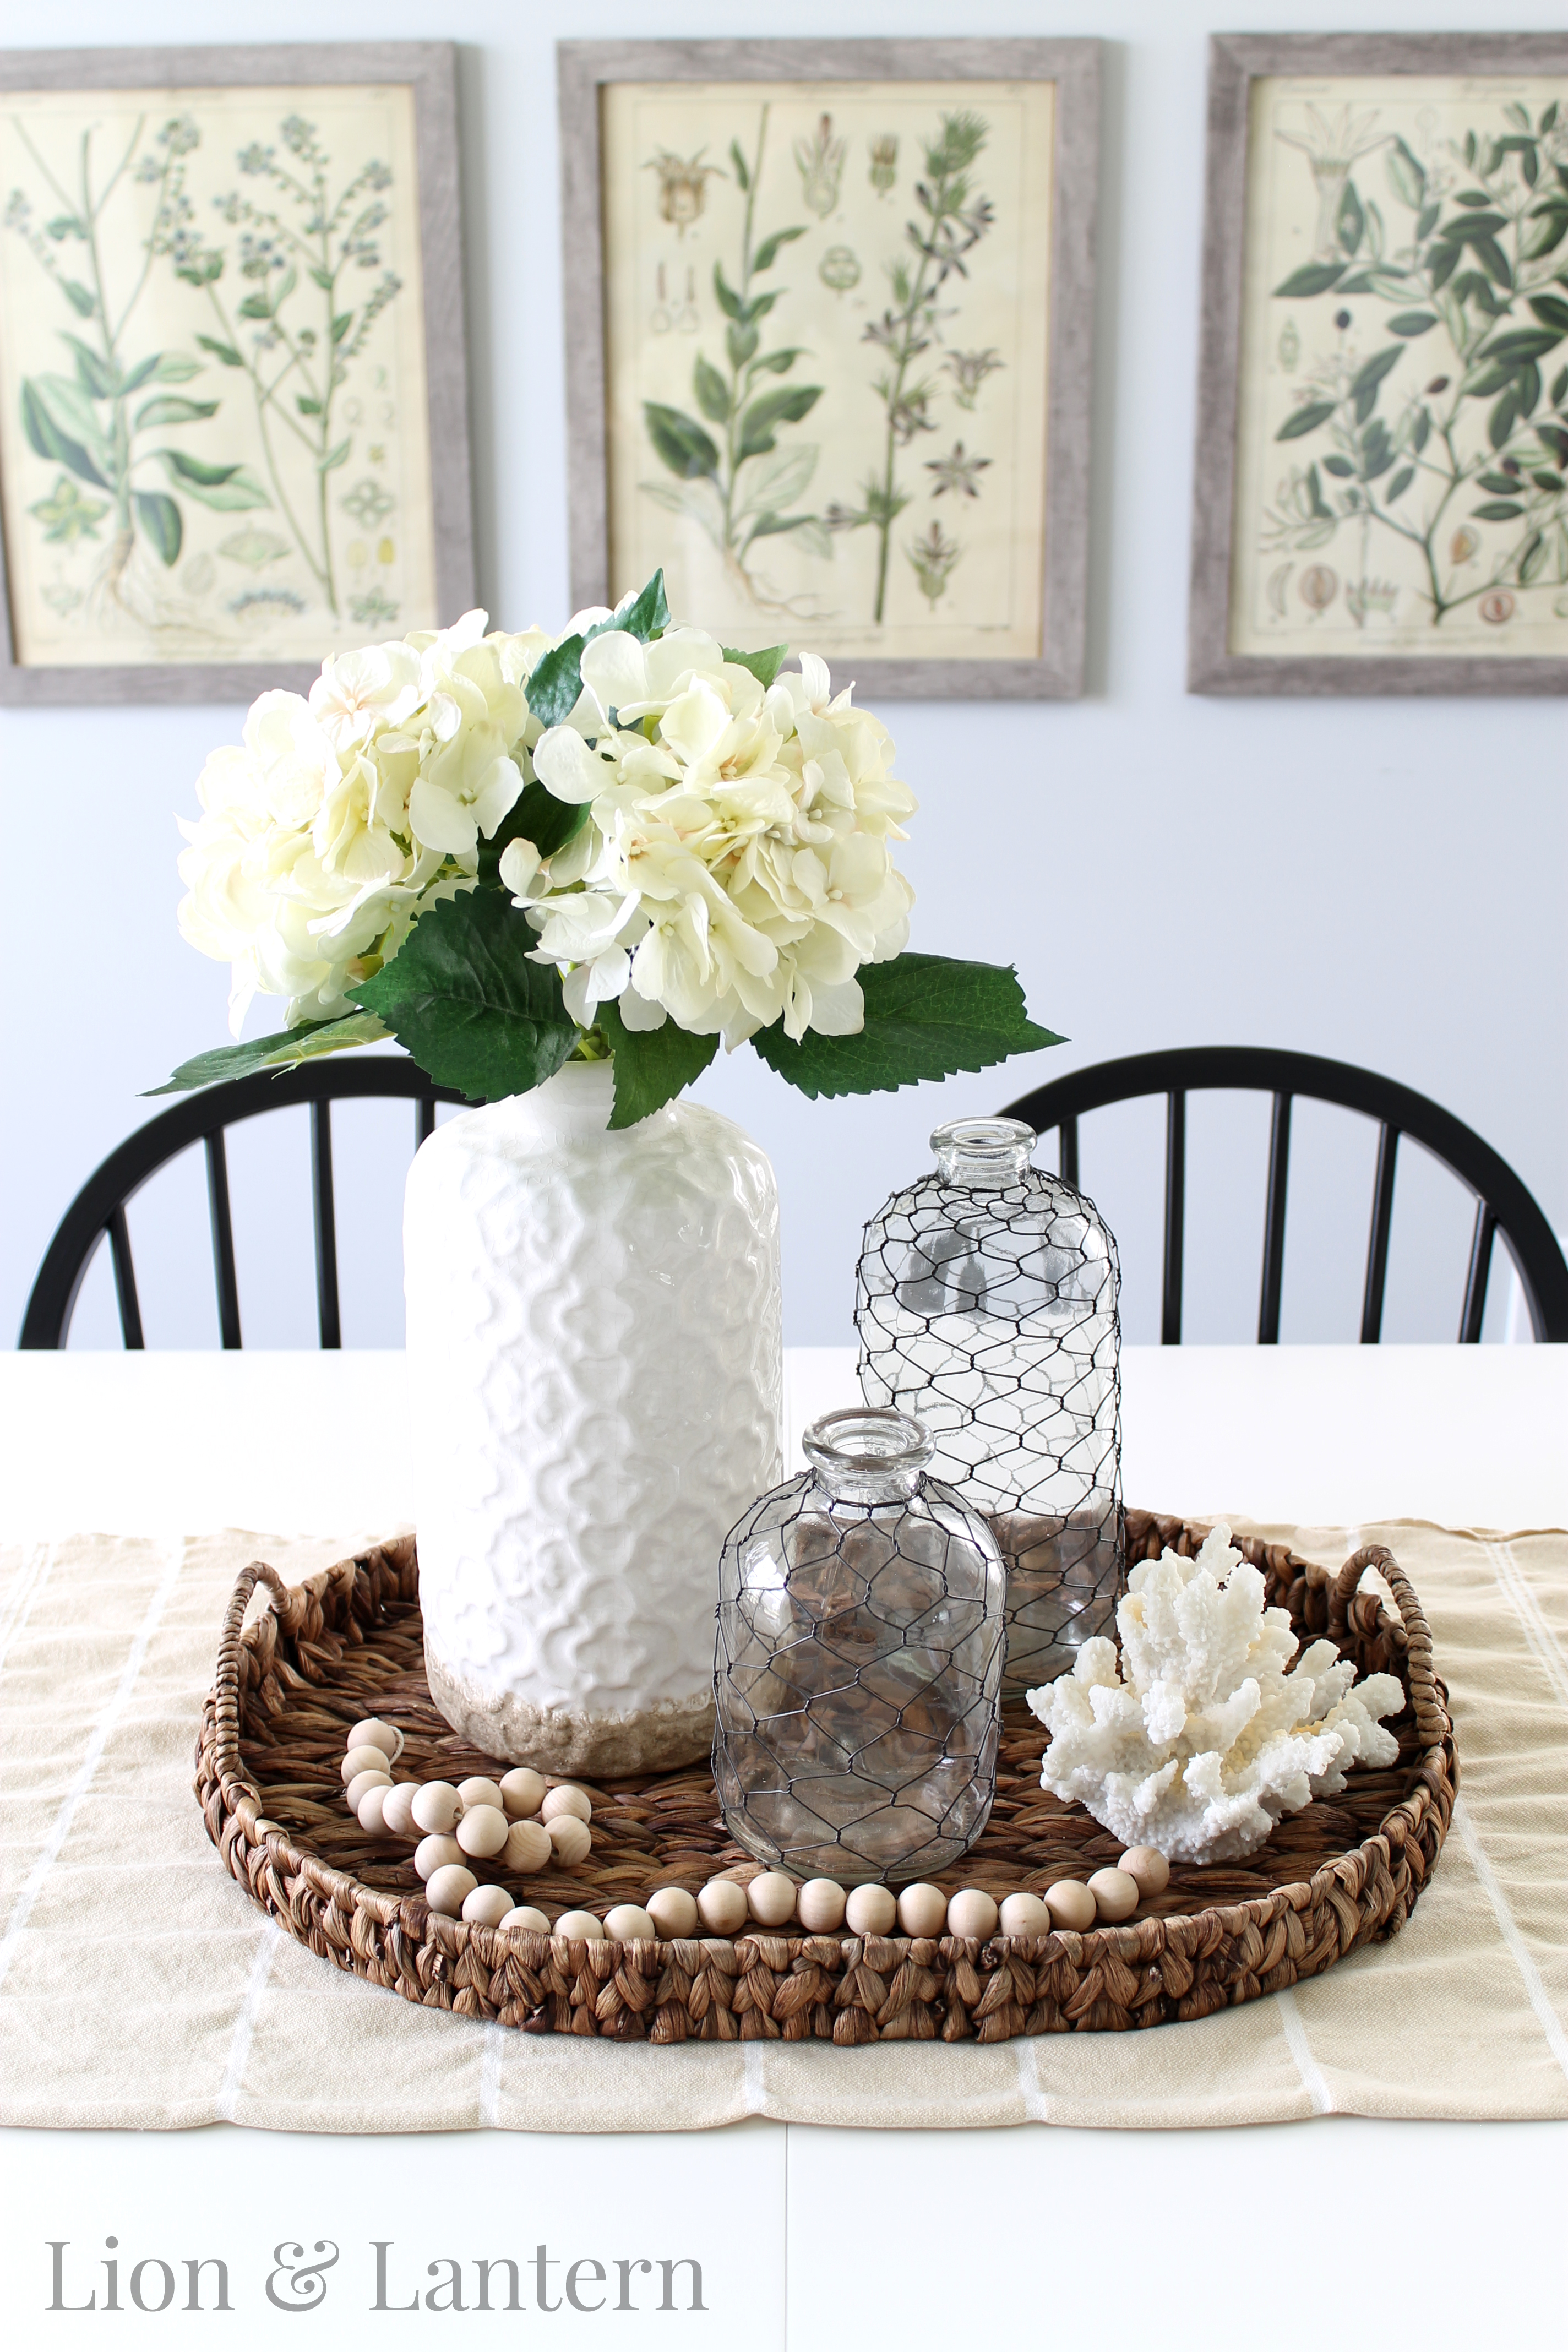 Coastal Farmhouse Dining Room at LionAndLantern.com. Botany prints, botanical prints, hydrangeas, coral, wood bead garland.